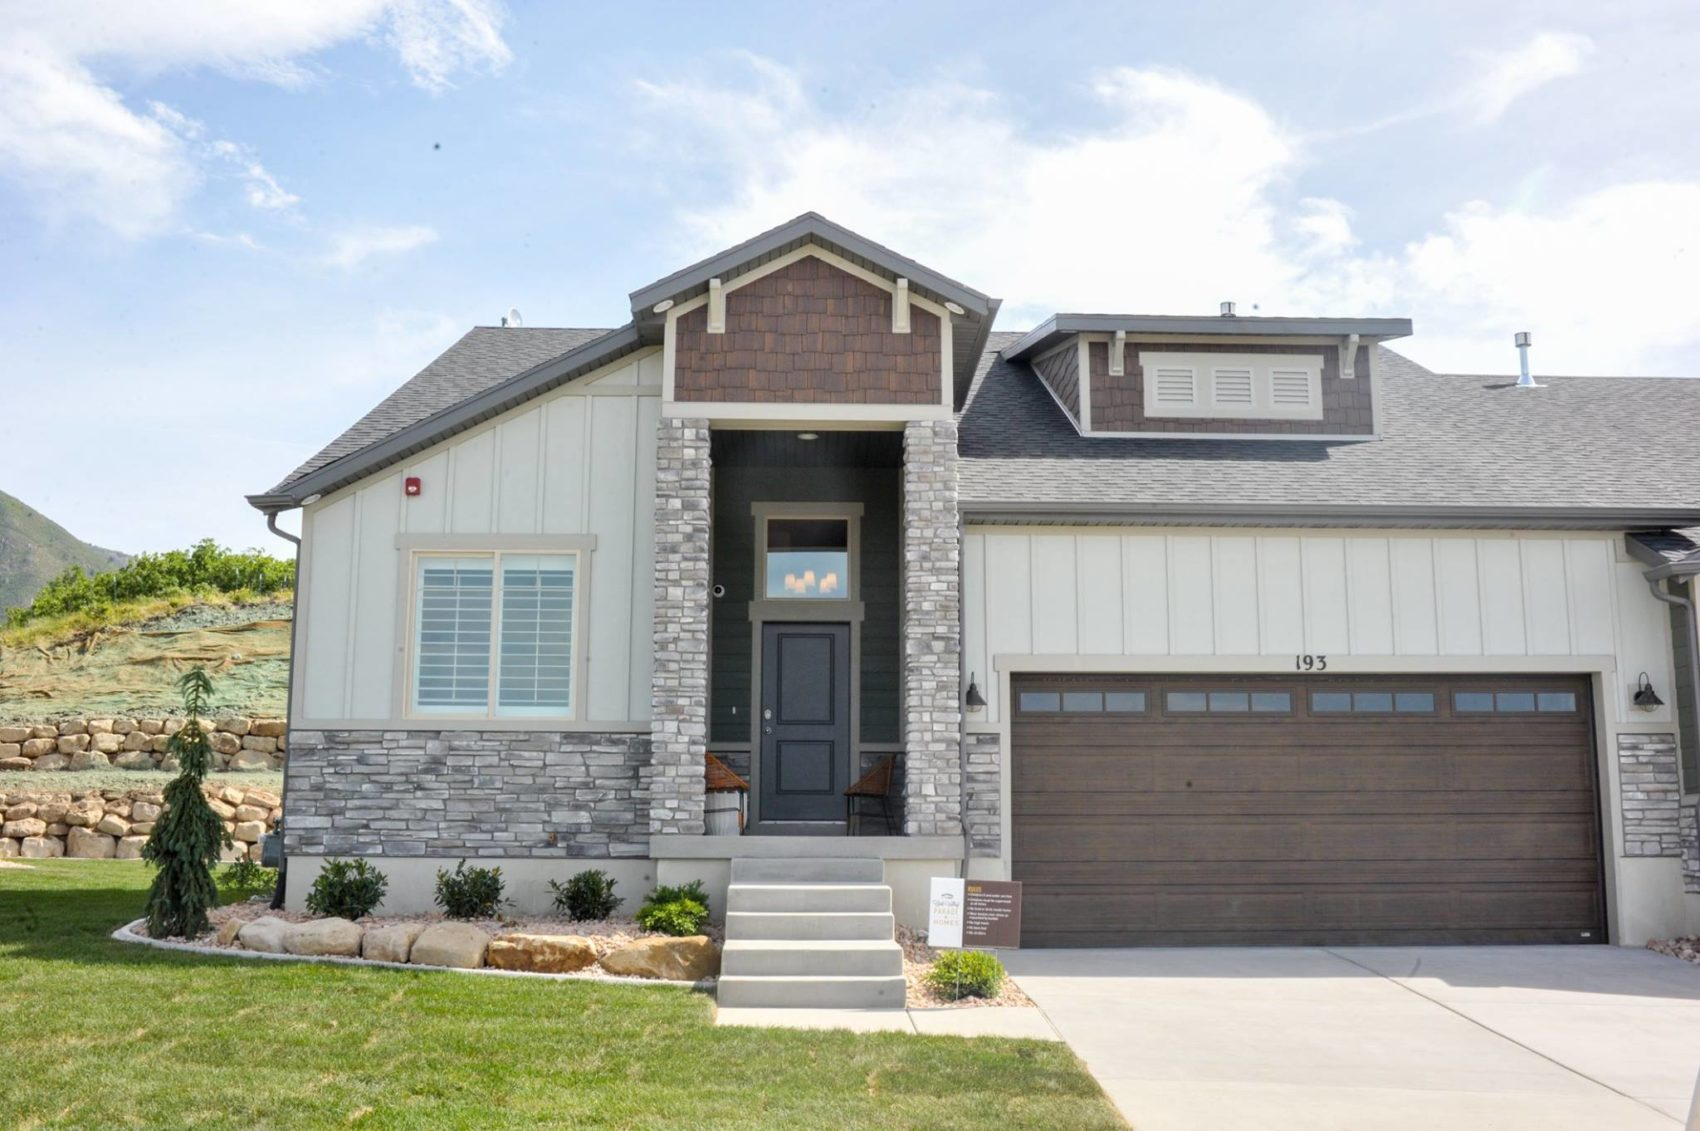 Utah Valley Parade of Homes 2017 Concorde  Hearth and Home Distributors of Utah LLC